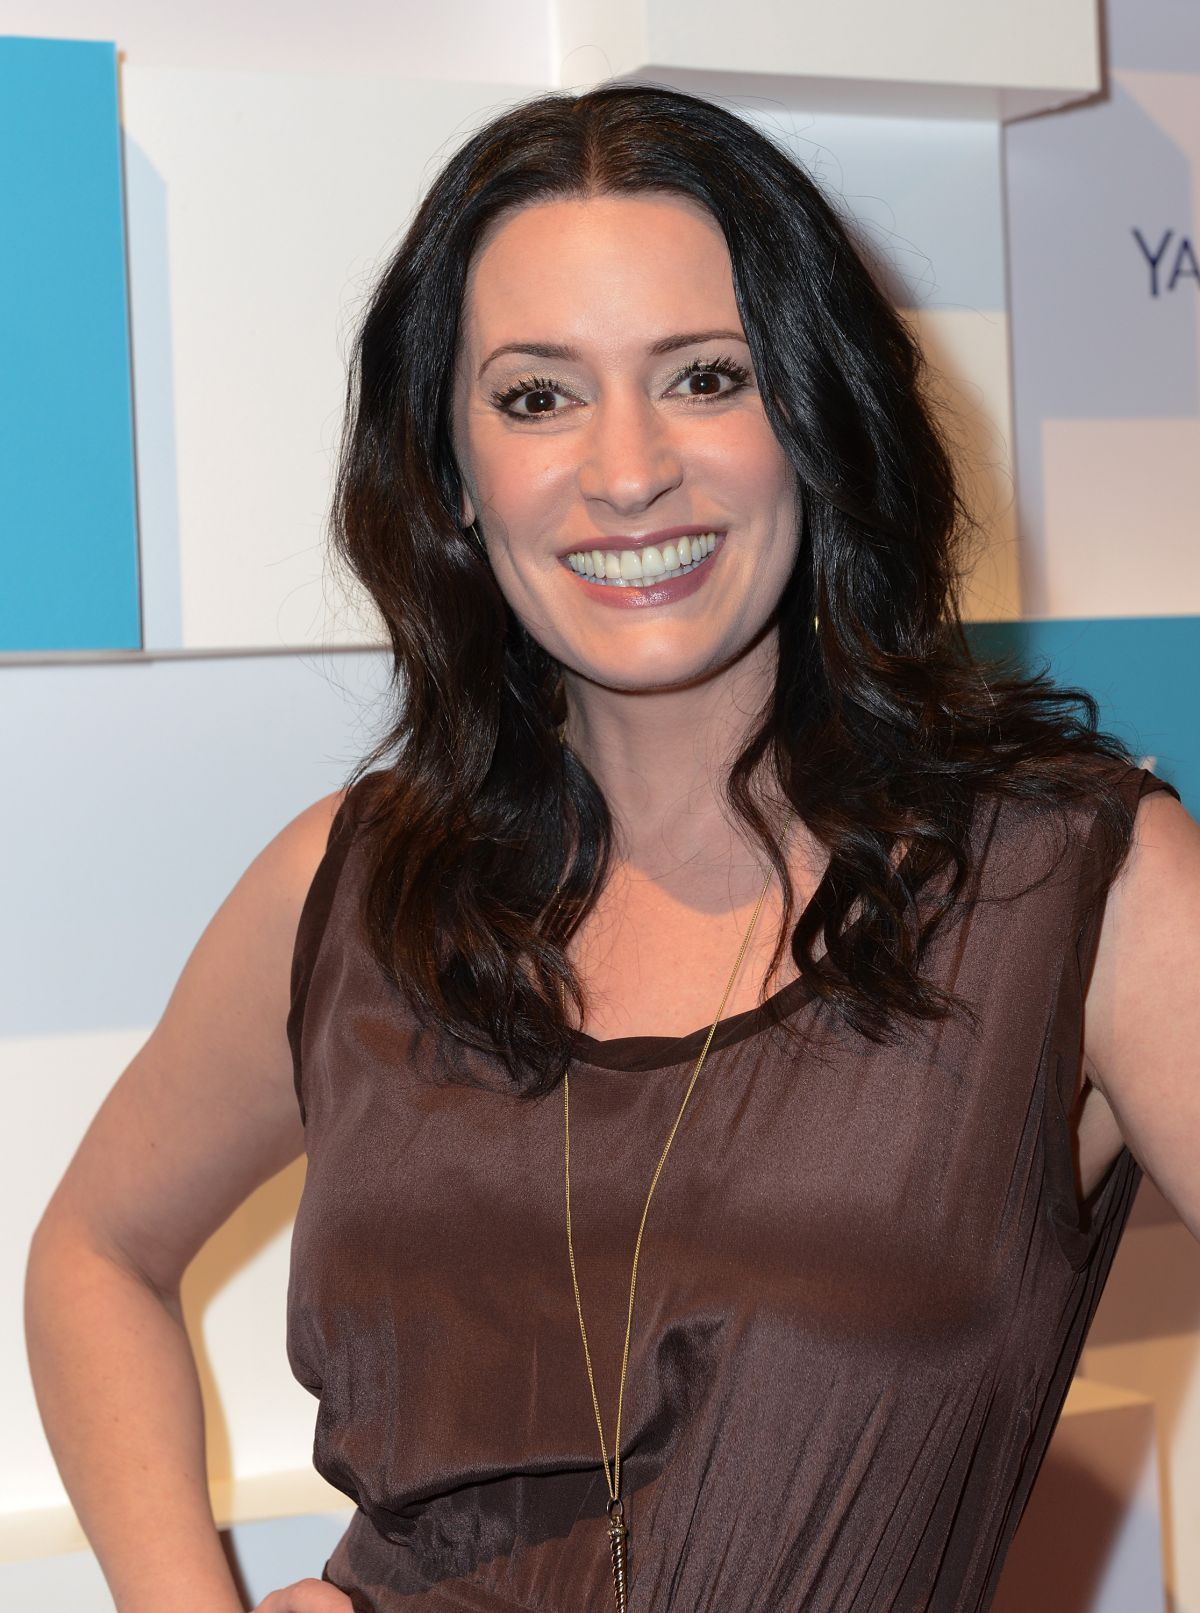 PAGET BREWSTER at Yahoo